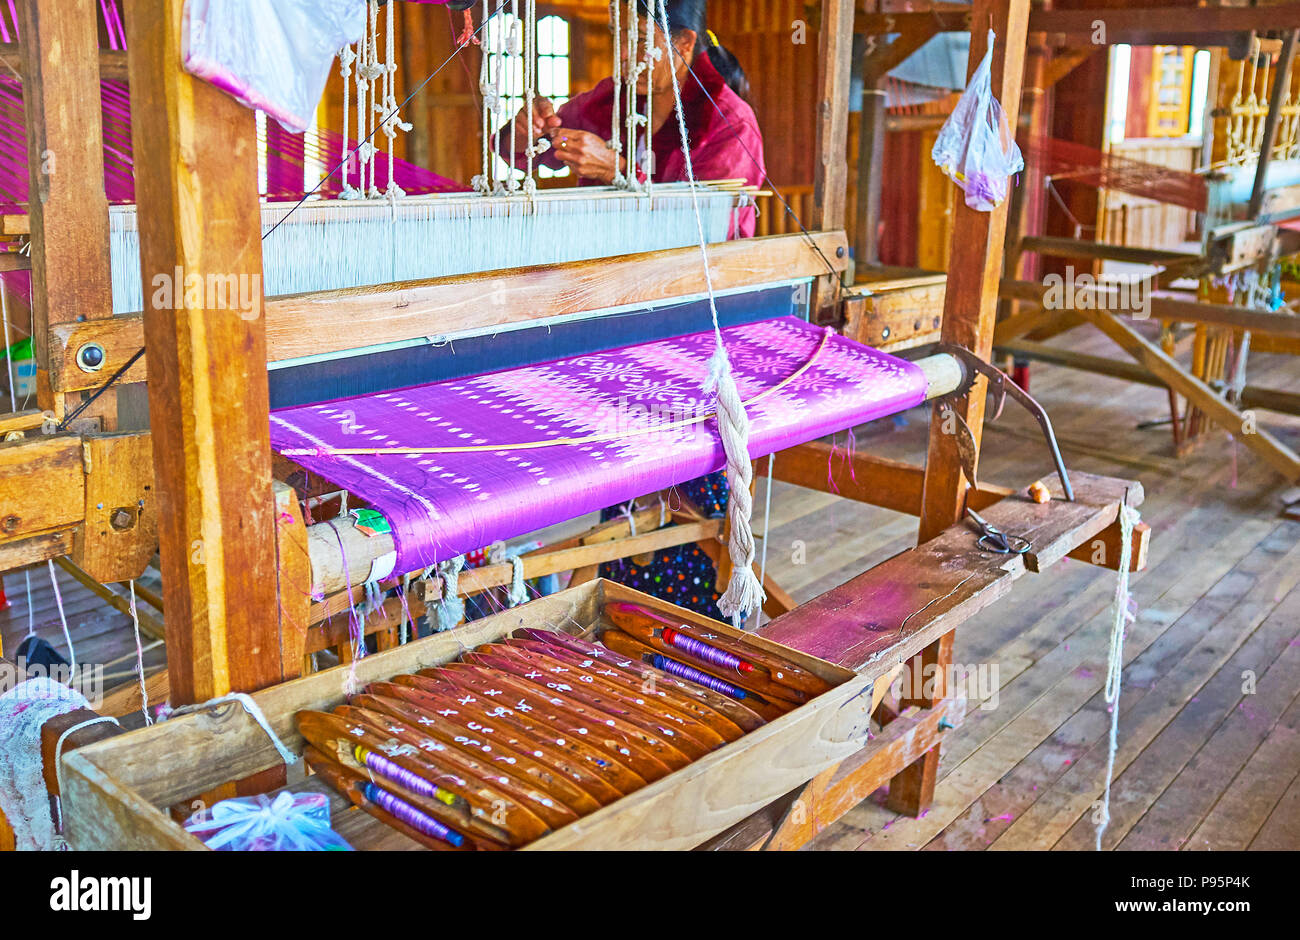 INPAWKHON, MYANMAR - FEBRUARY 18, 2018: Handmade textile production is one of the main handicrafts on Inle Lake, local workshops offer silk and cotton - Stock Image